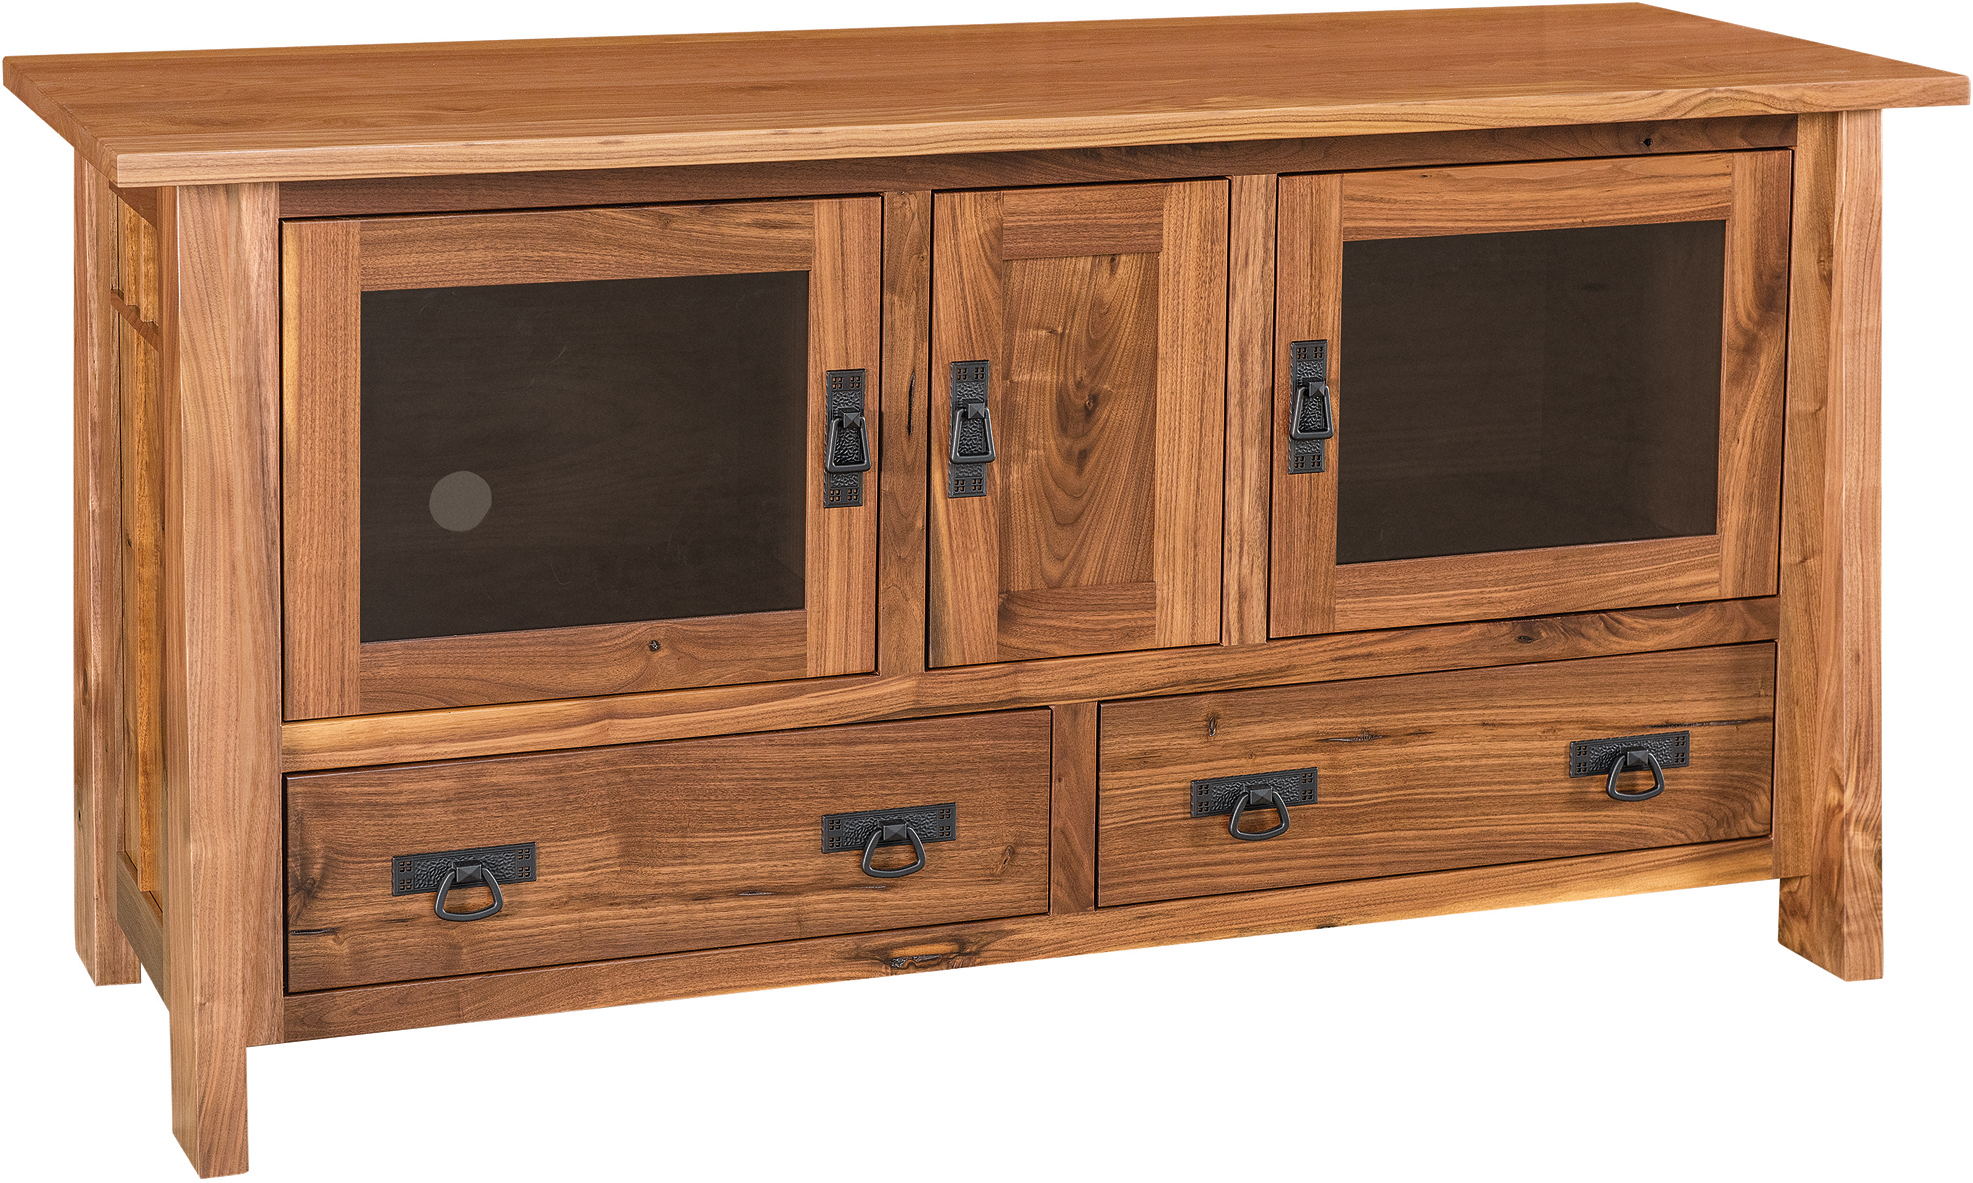 Freedom TV Stand